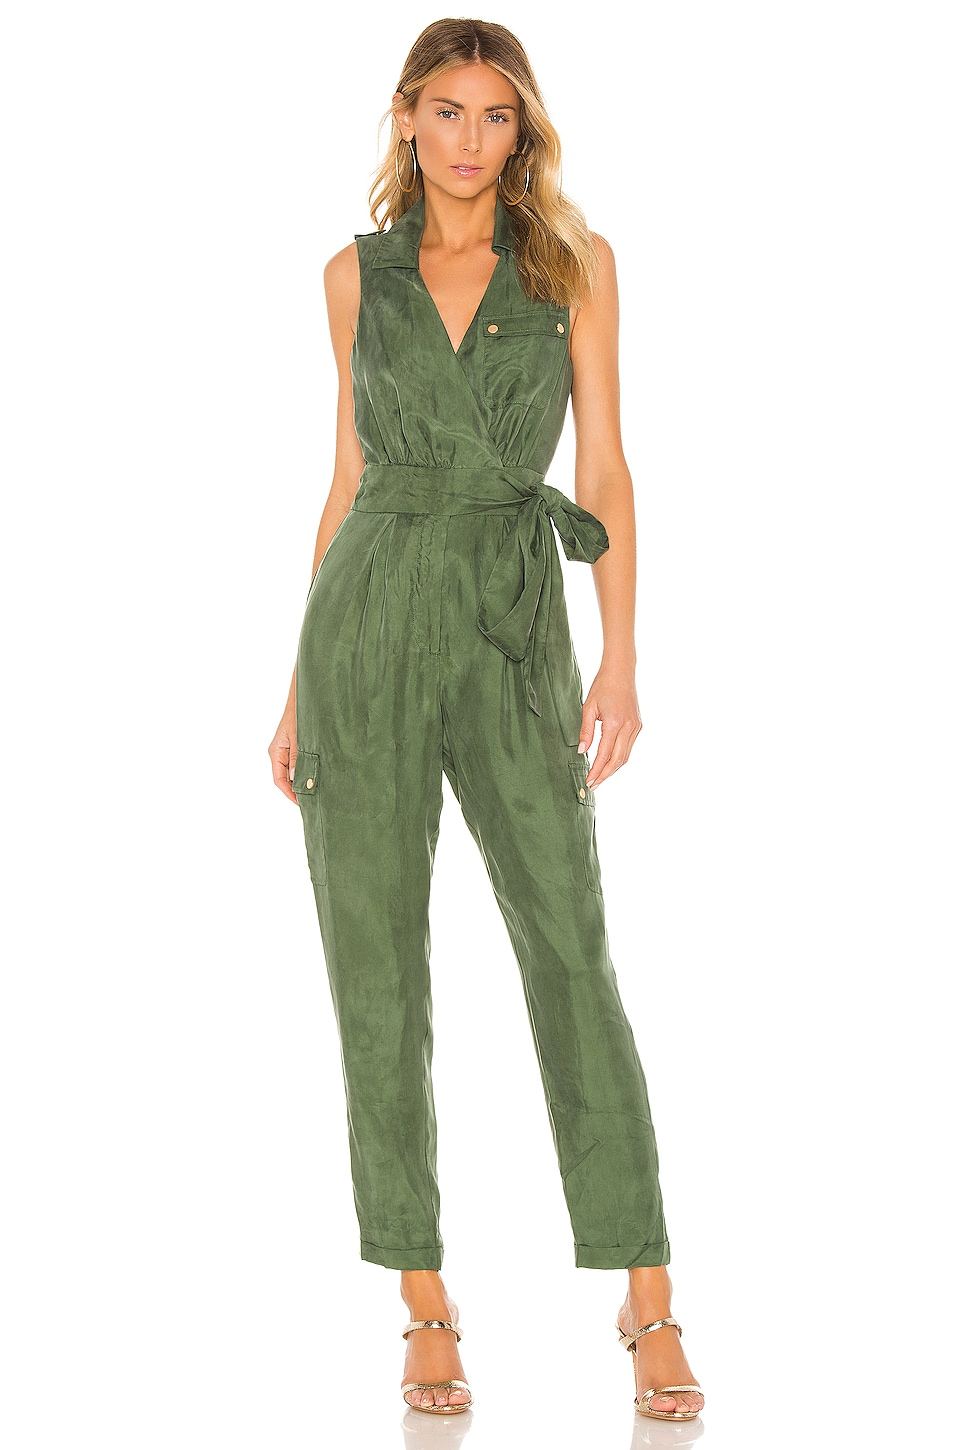 House of Harlow 1960 X REVOLVE Ro Jumpsuit in Green